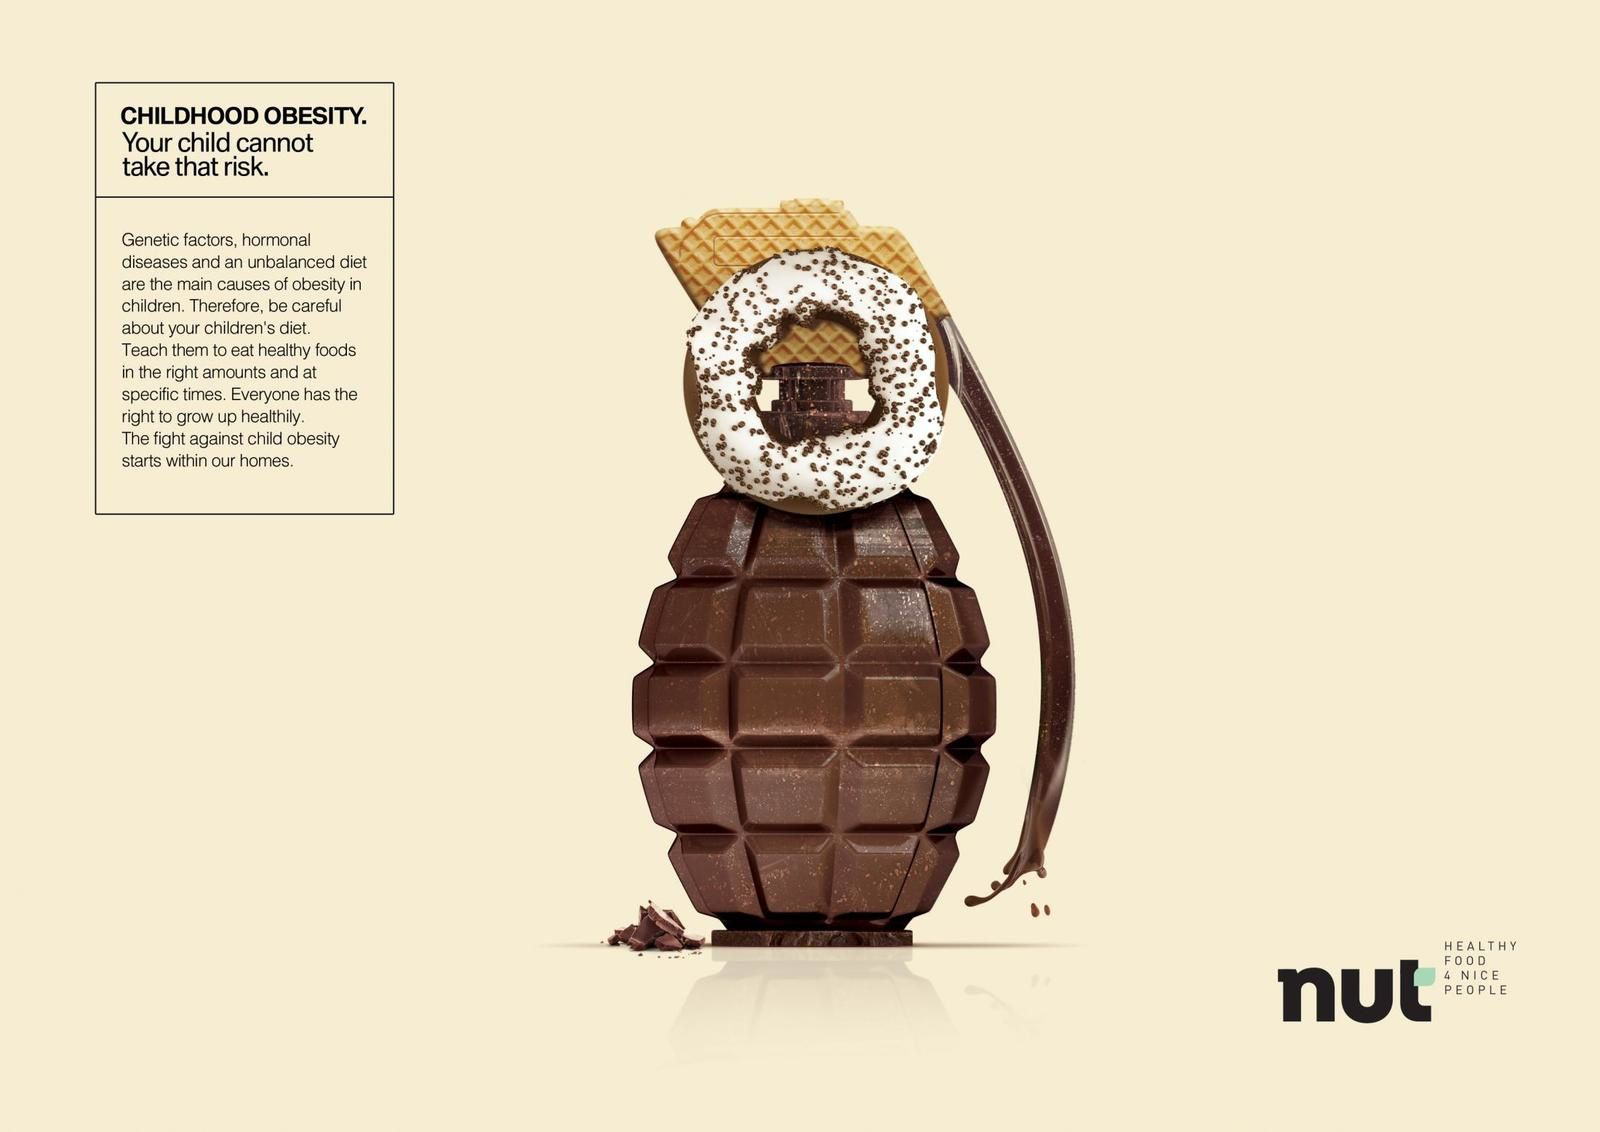 """Nut : """"Childhood obesity. Your child cannot take that risk"""" I Agence : Criola, Natal, Brésil (mai 2019)"""